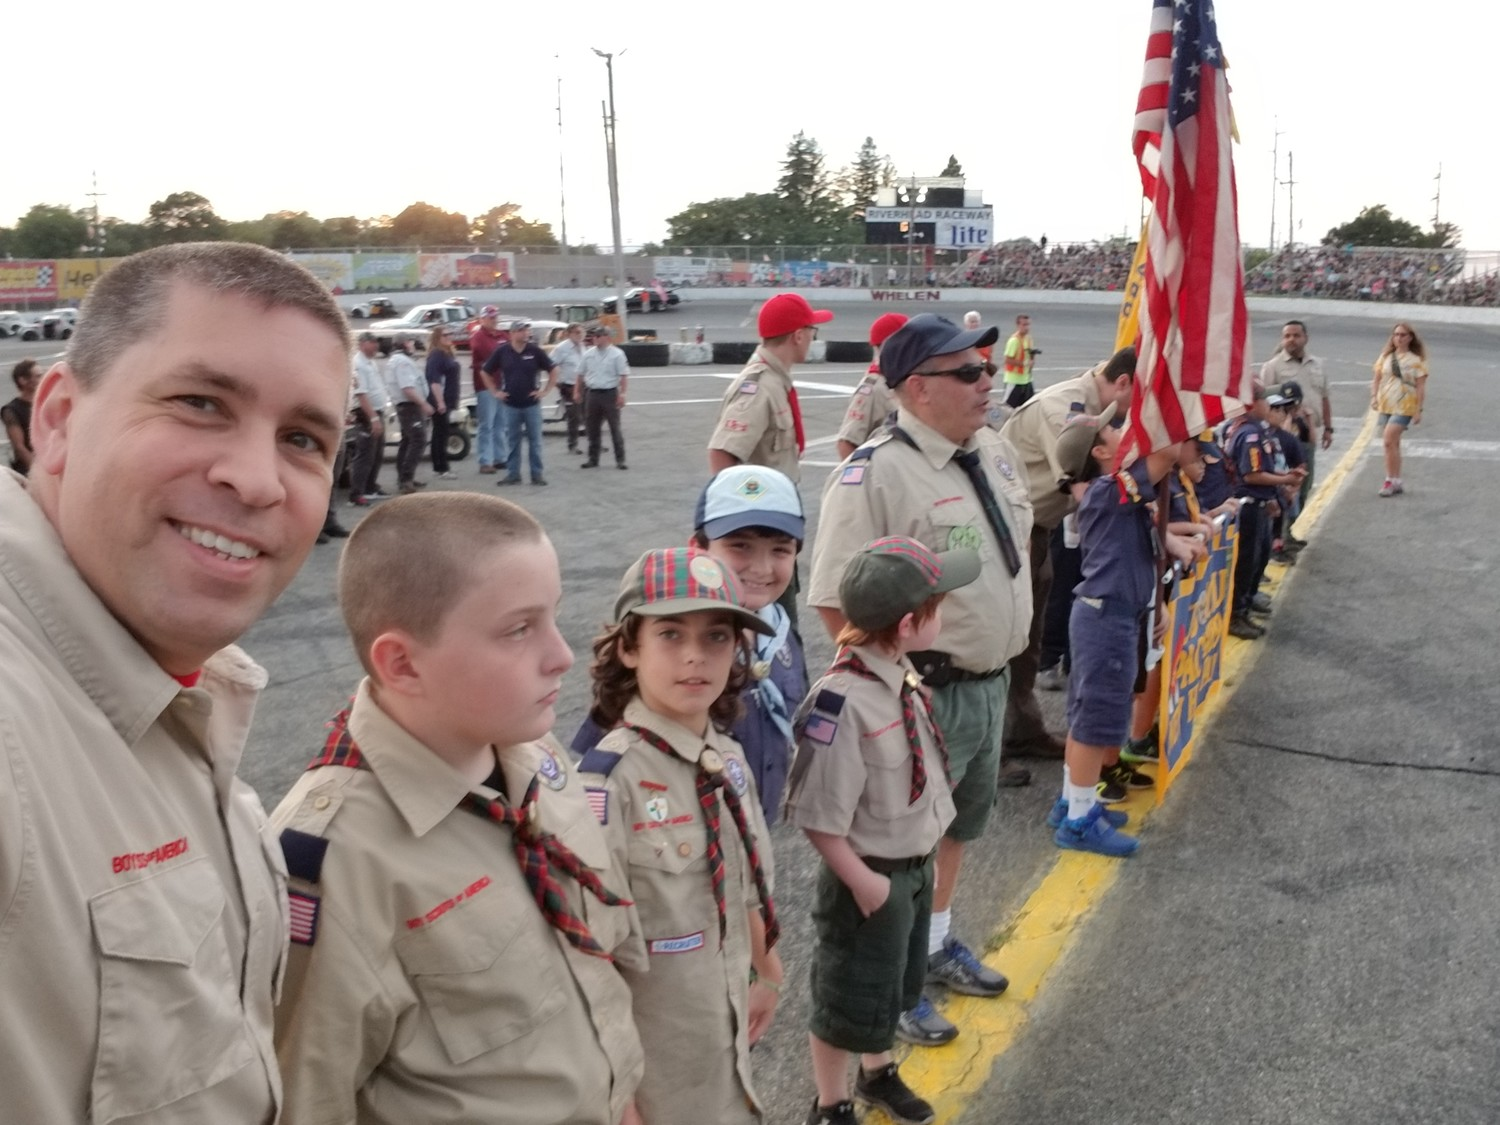 Seaford Pack 581 cub scouts arrive at the annual School Bus Demolition Derby at Riverhead Raceway.